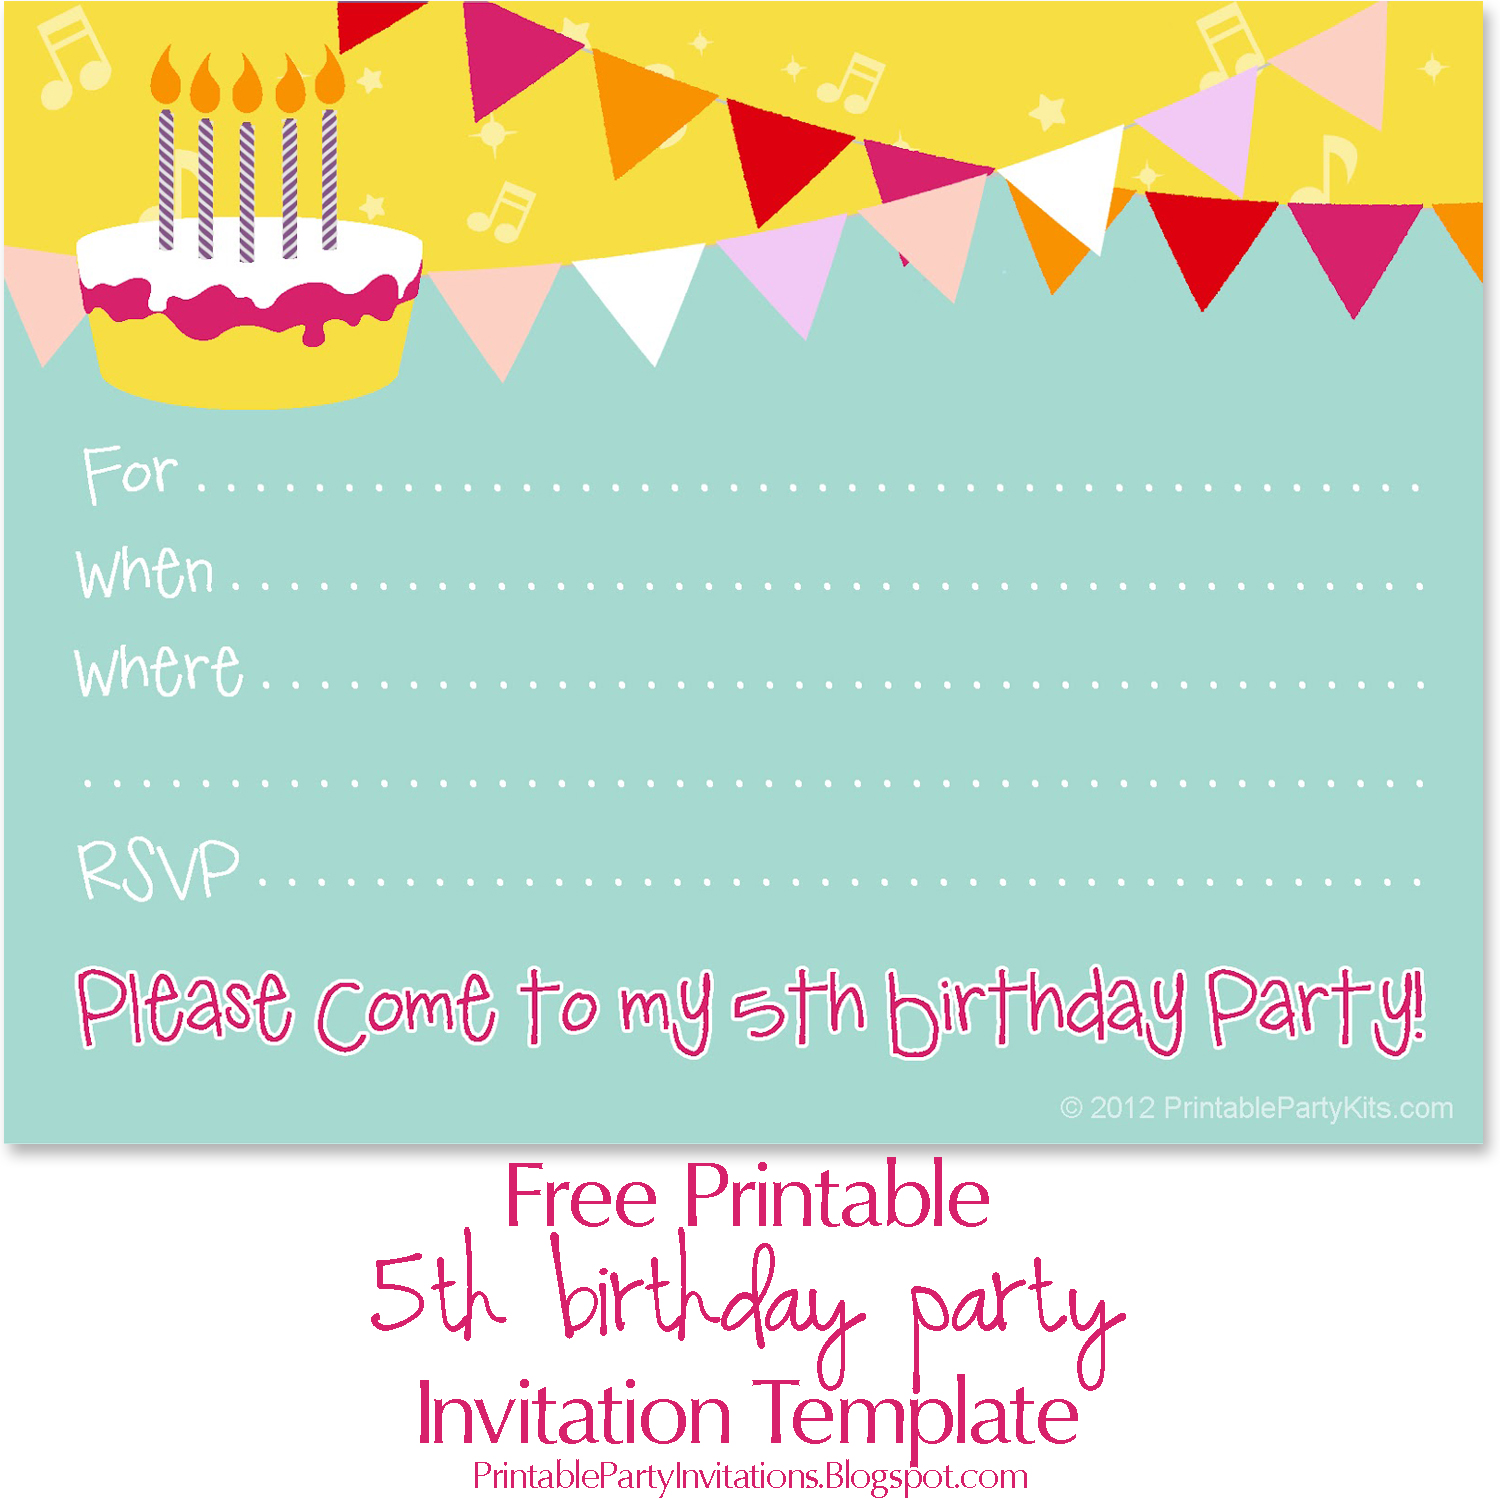 Free Printable Invite For A 5th Birthday Party